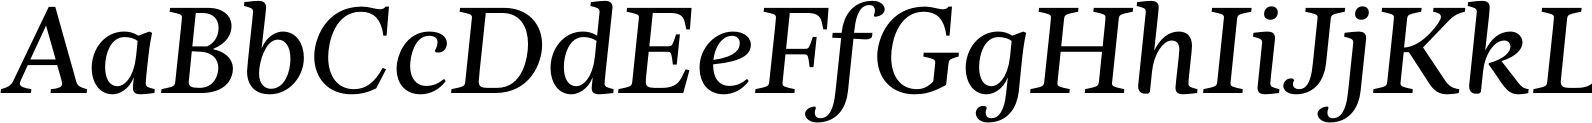 Nyte Book Italic Font